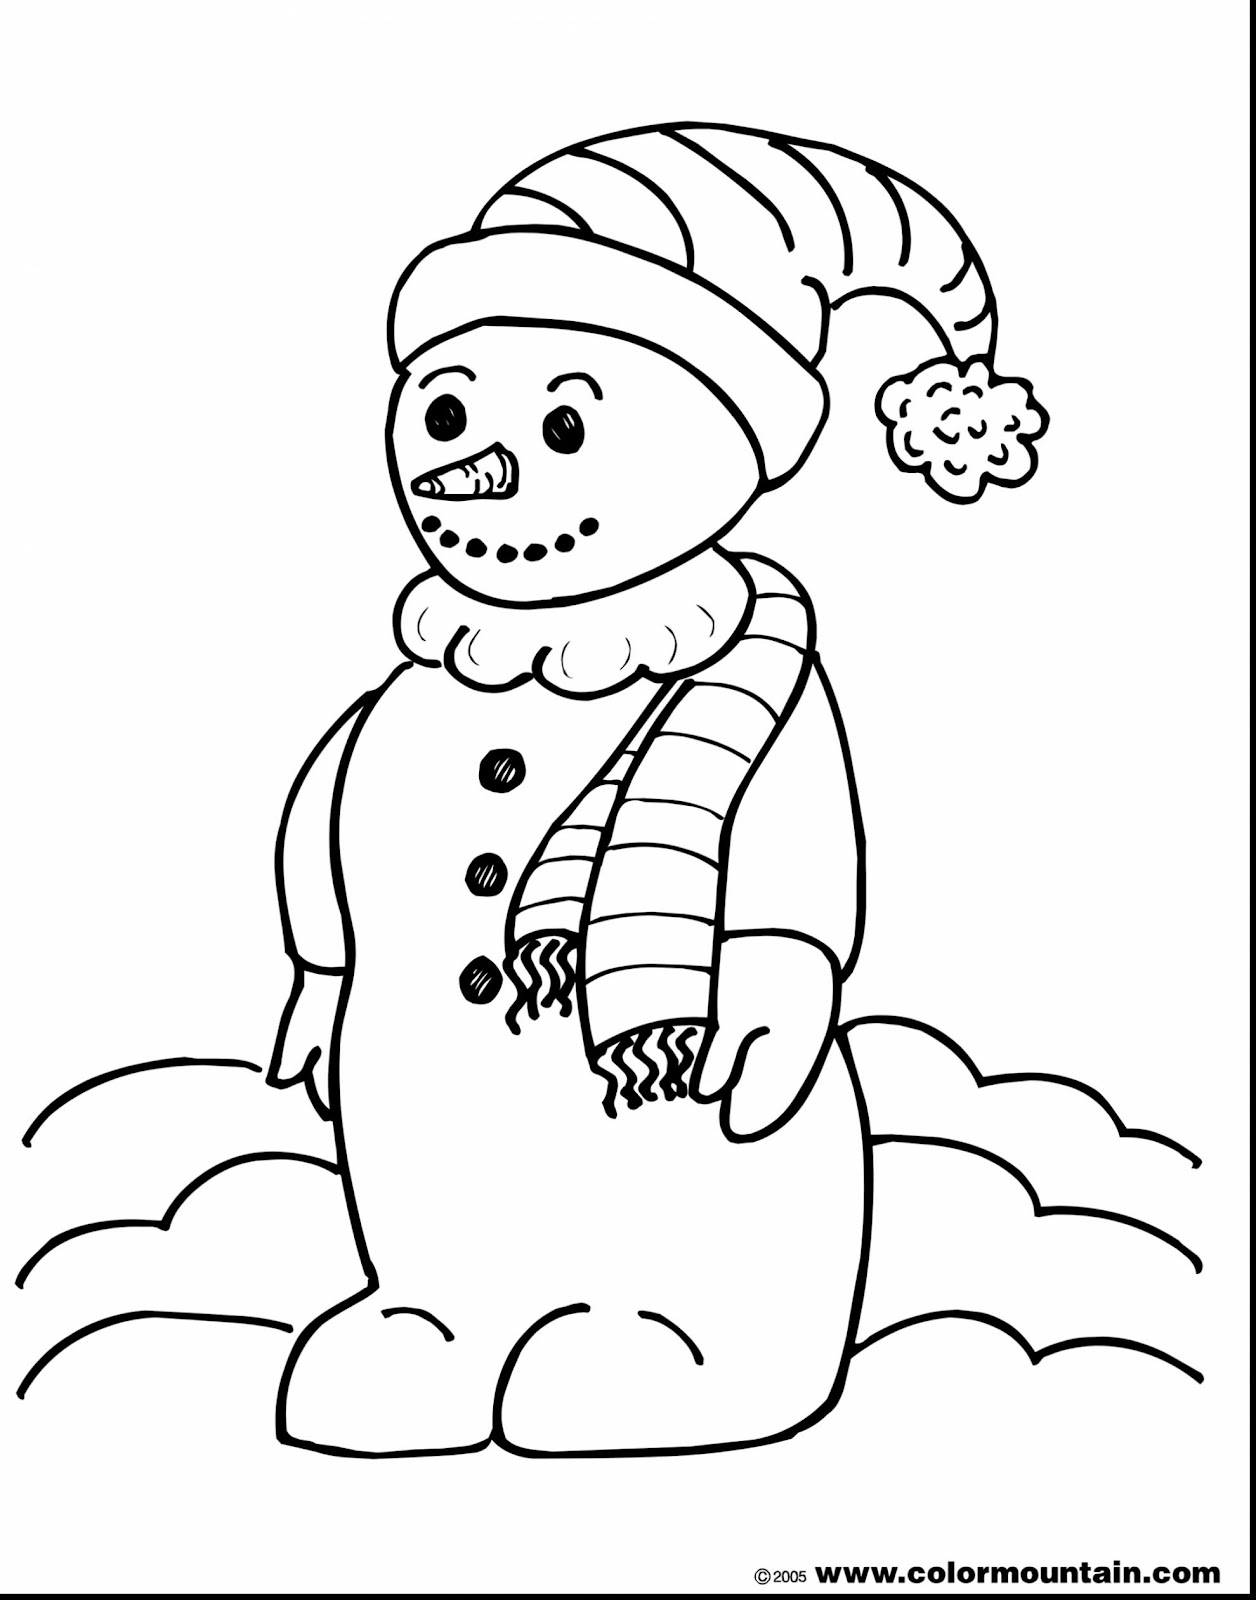 Snowman - Free Coloring Pages